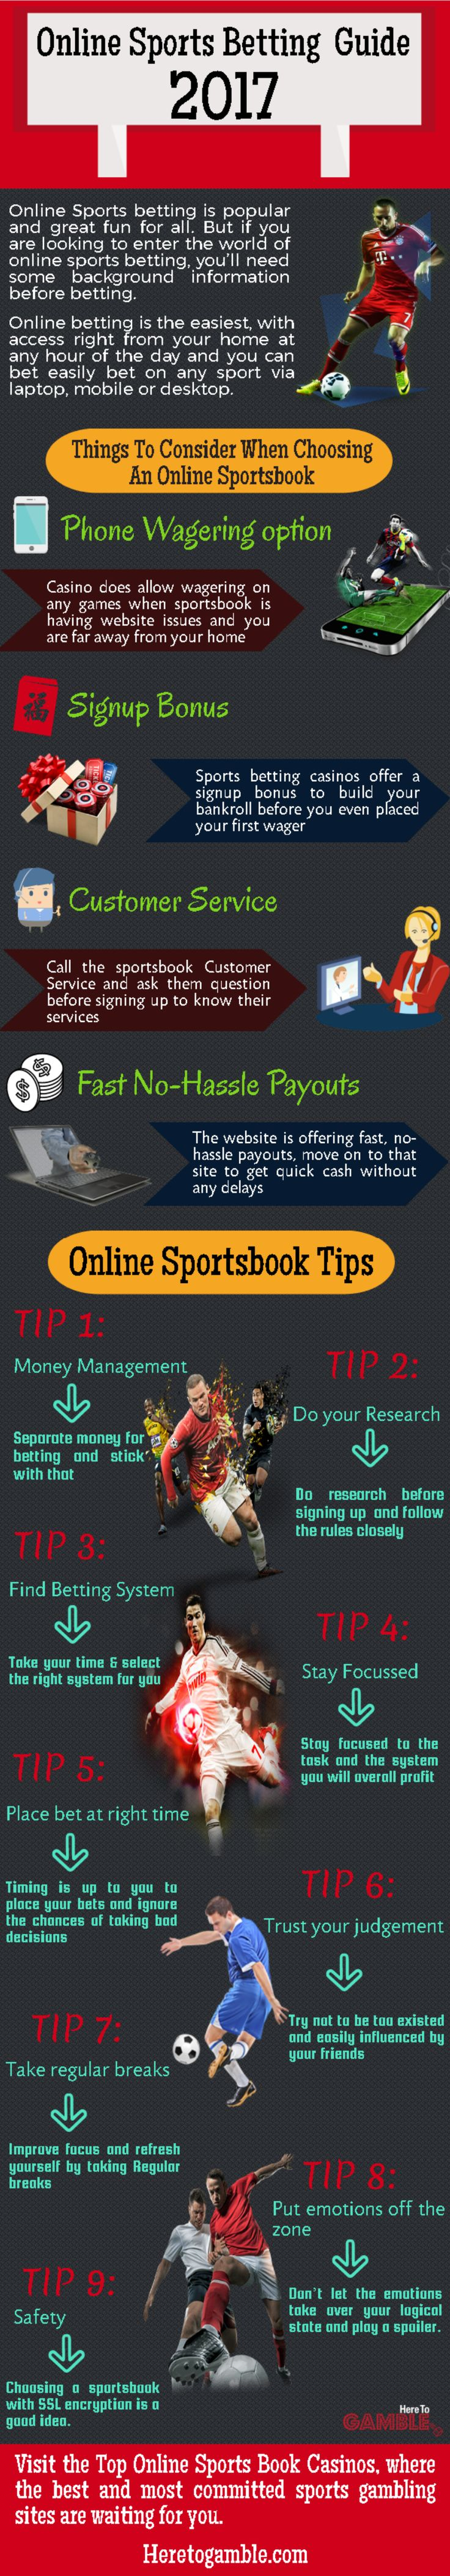 Online Sports Betting Guide - 2017